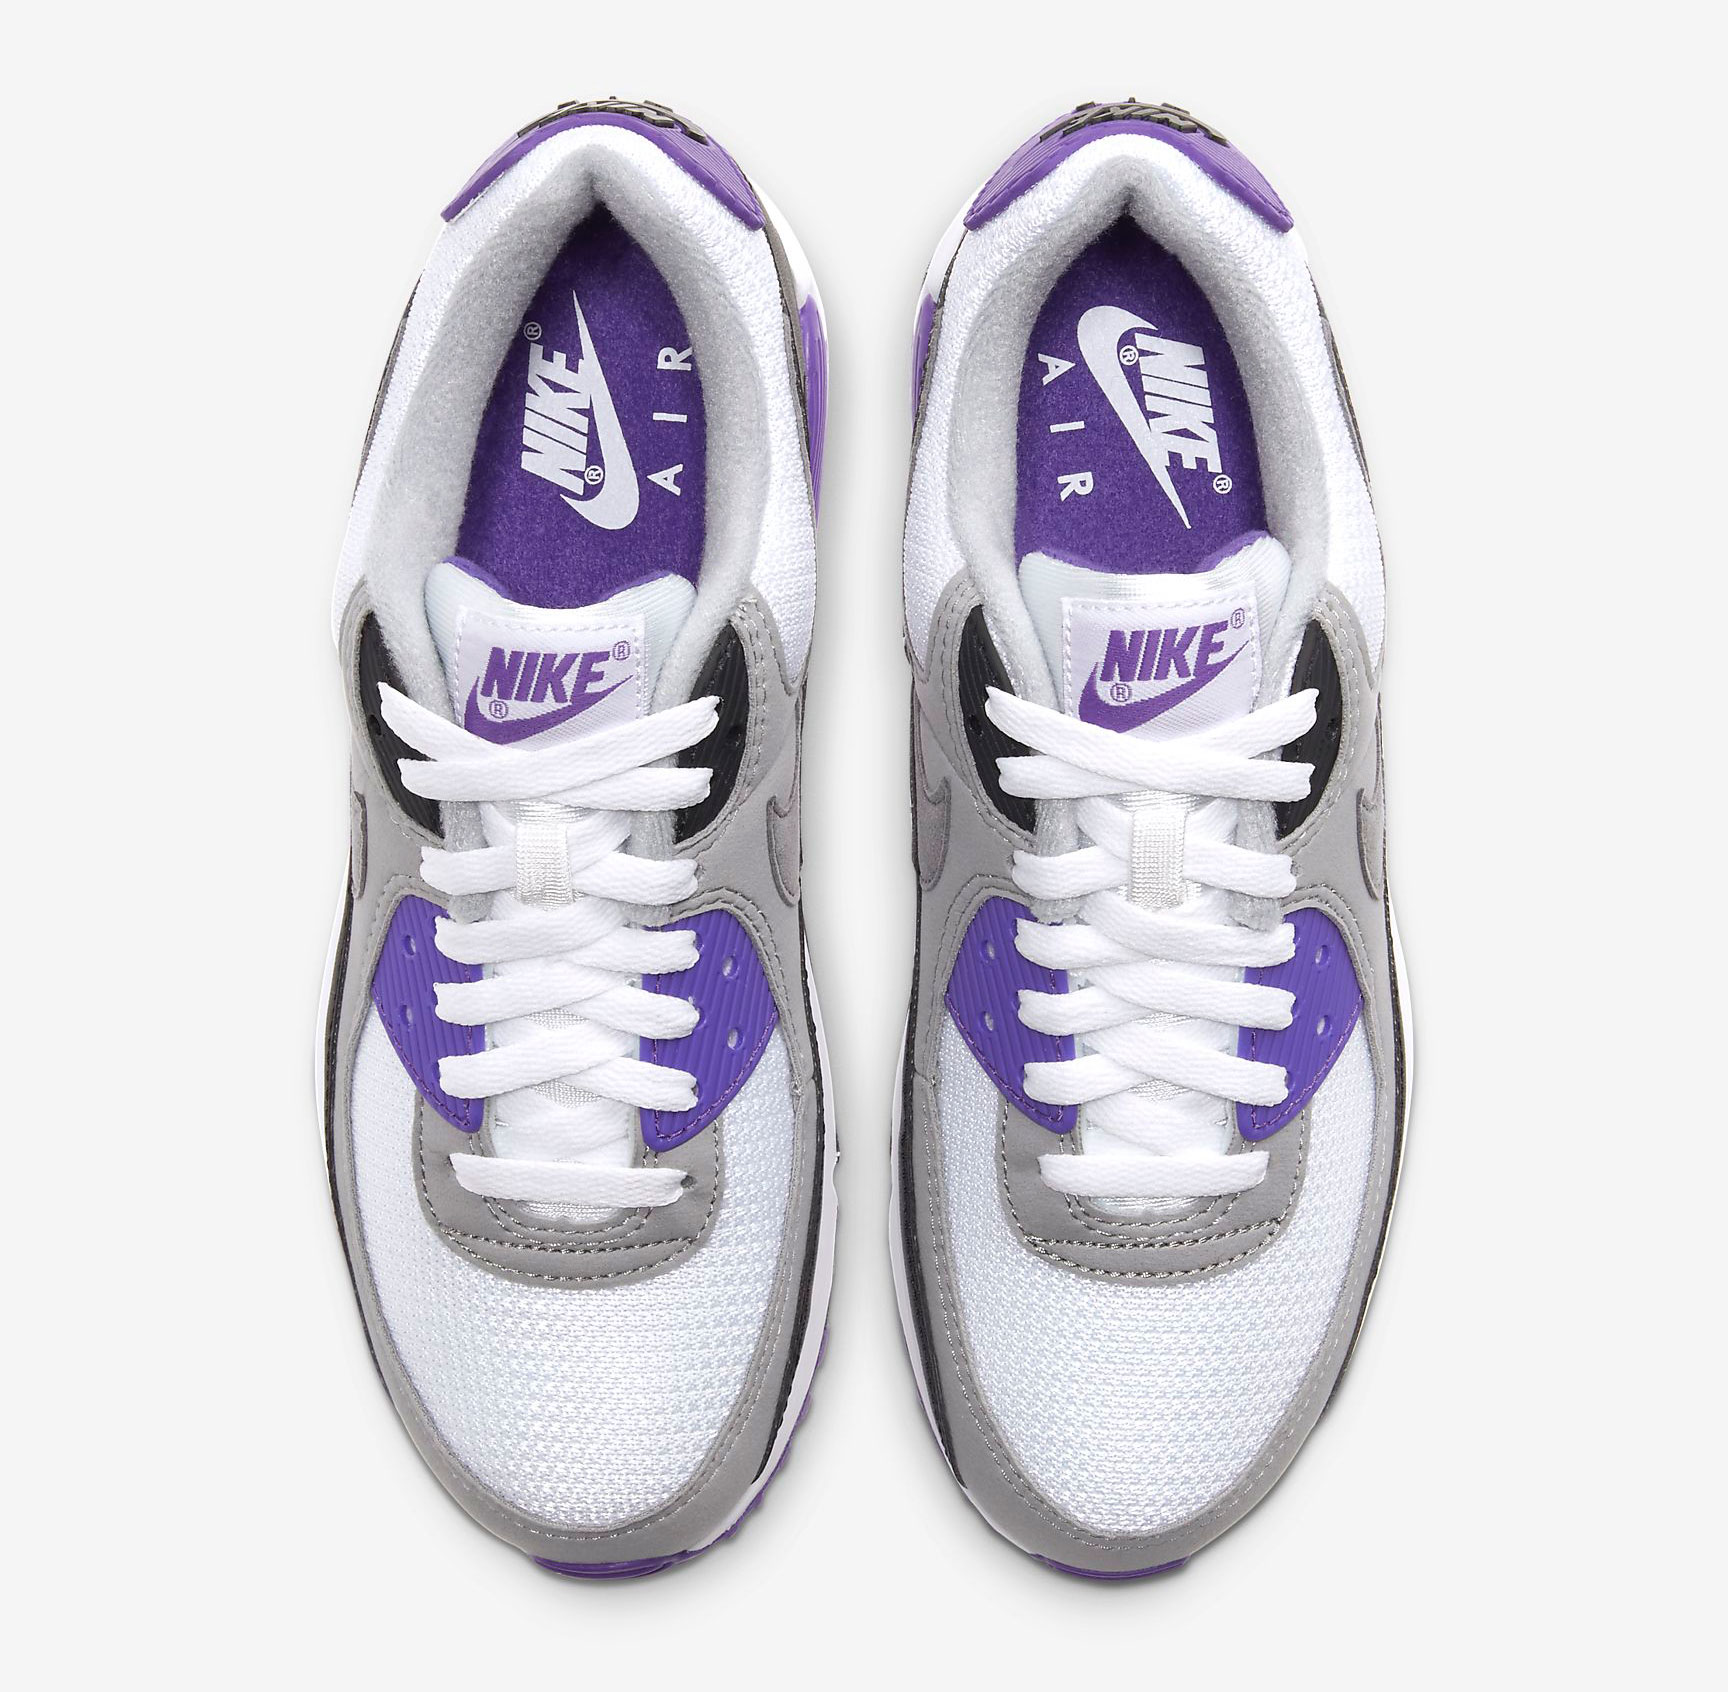 nike-air-max-90-og-hyper-grape-4